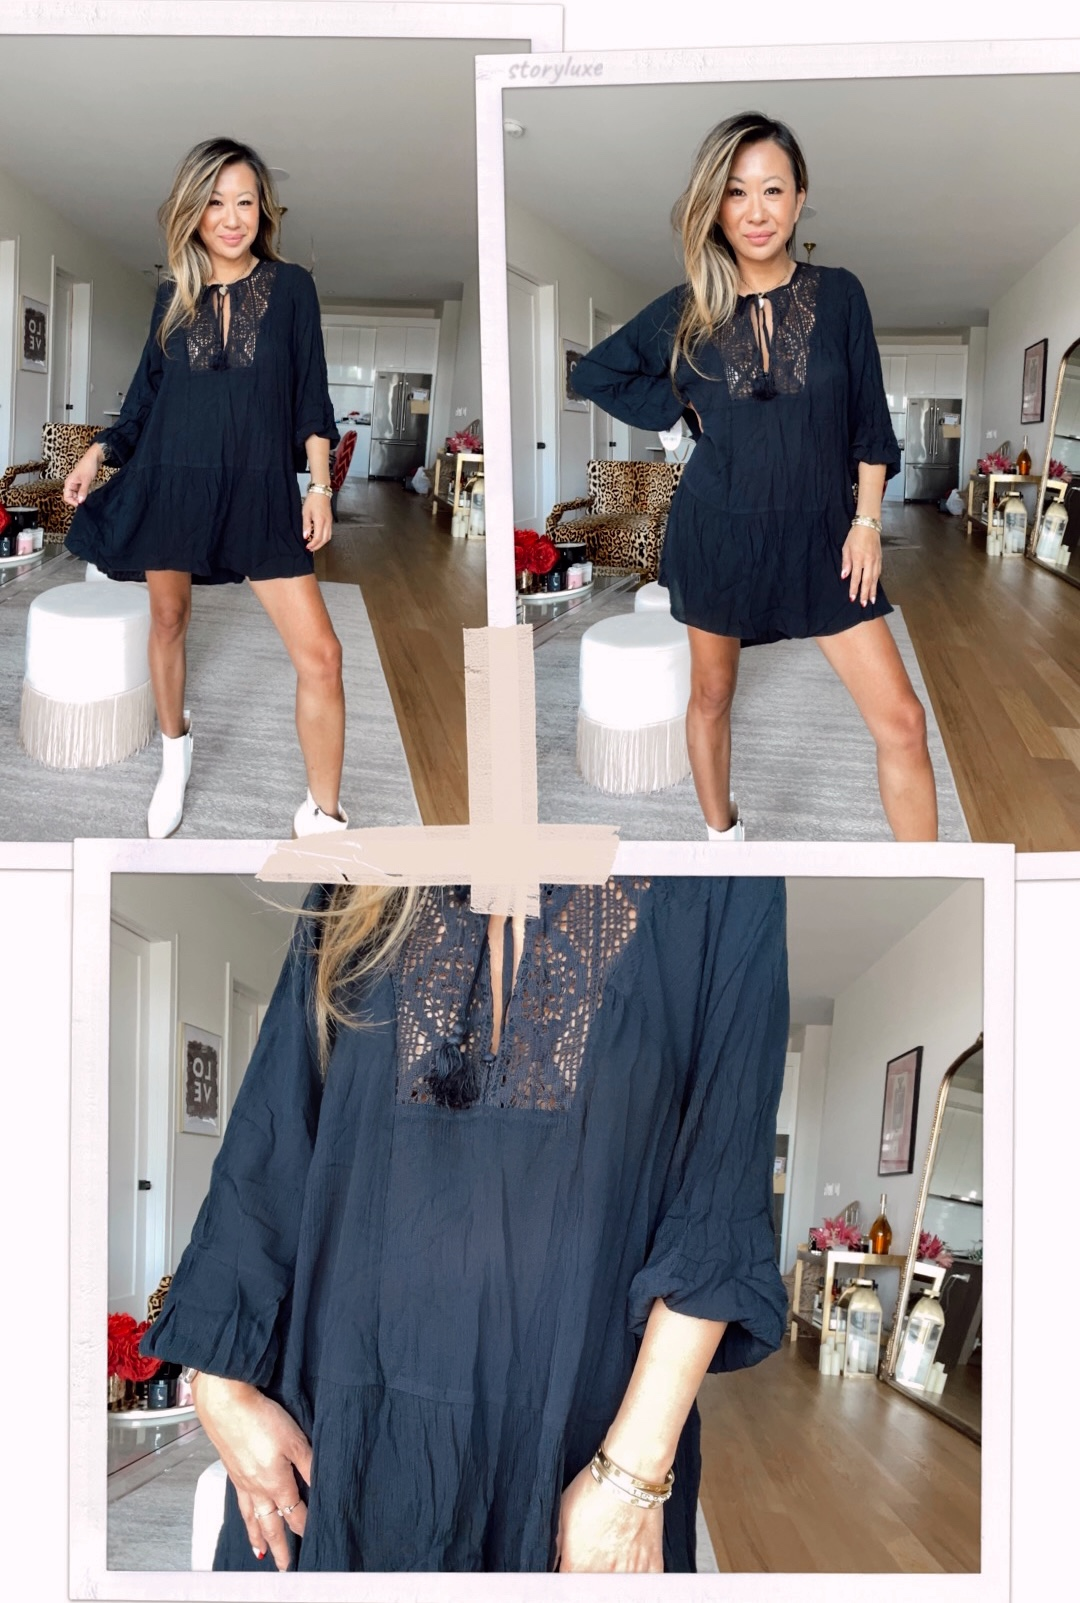 Scoop Women's Tunic Dress with Long Sleeves, black tunic dress, Walmart dress, walmart style, black tunic dress outfit ideas, how to style a black dress with white boots, white boots black dress